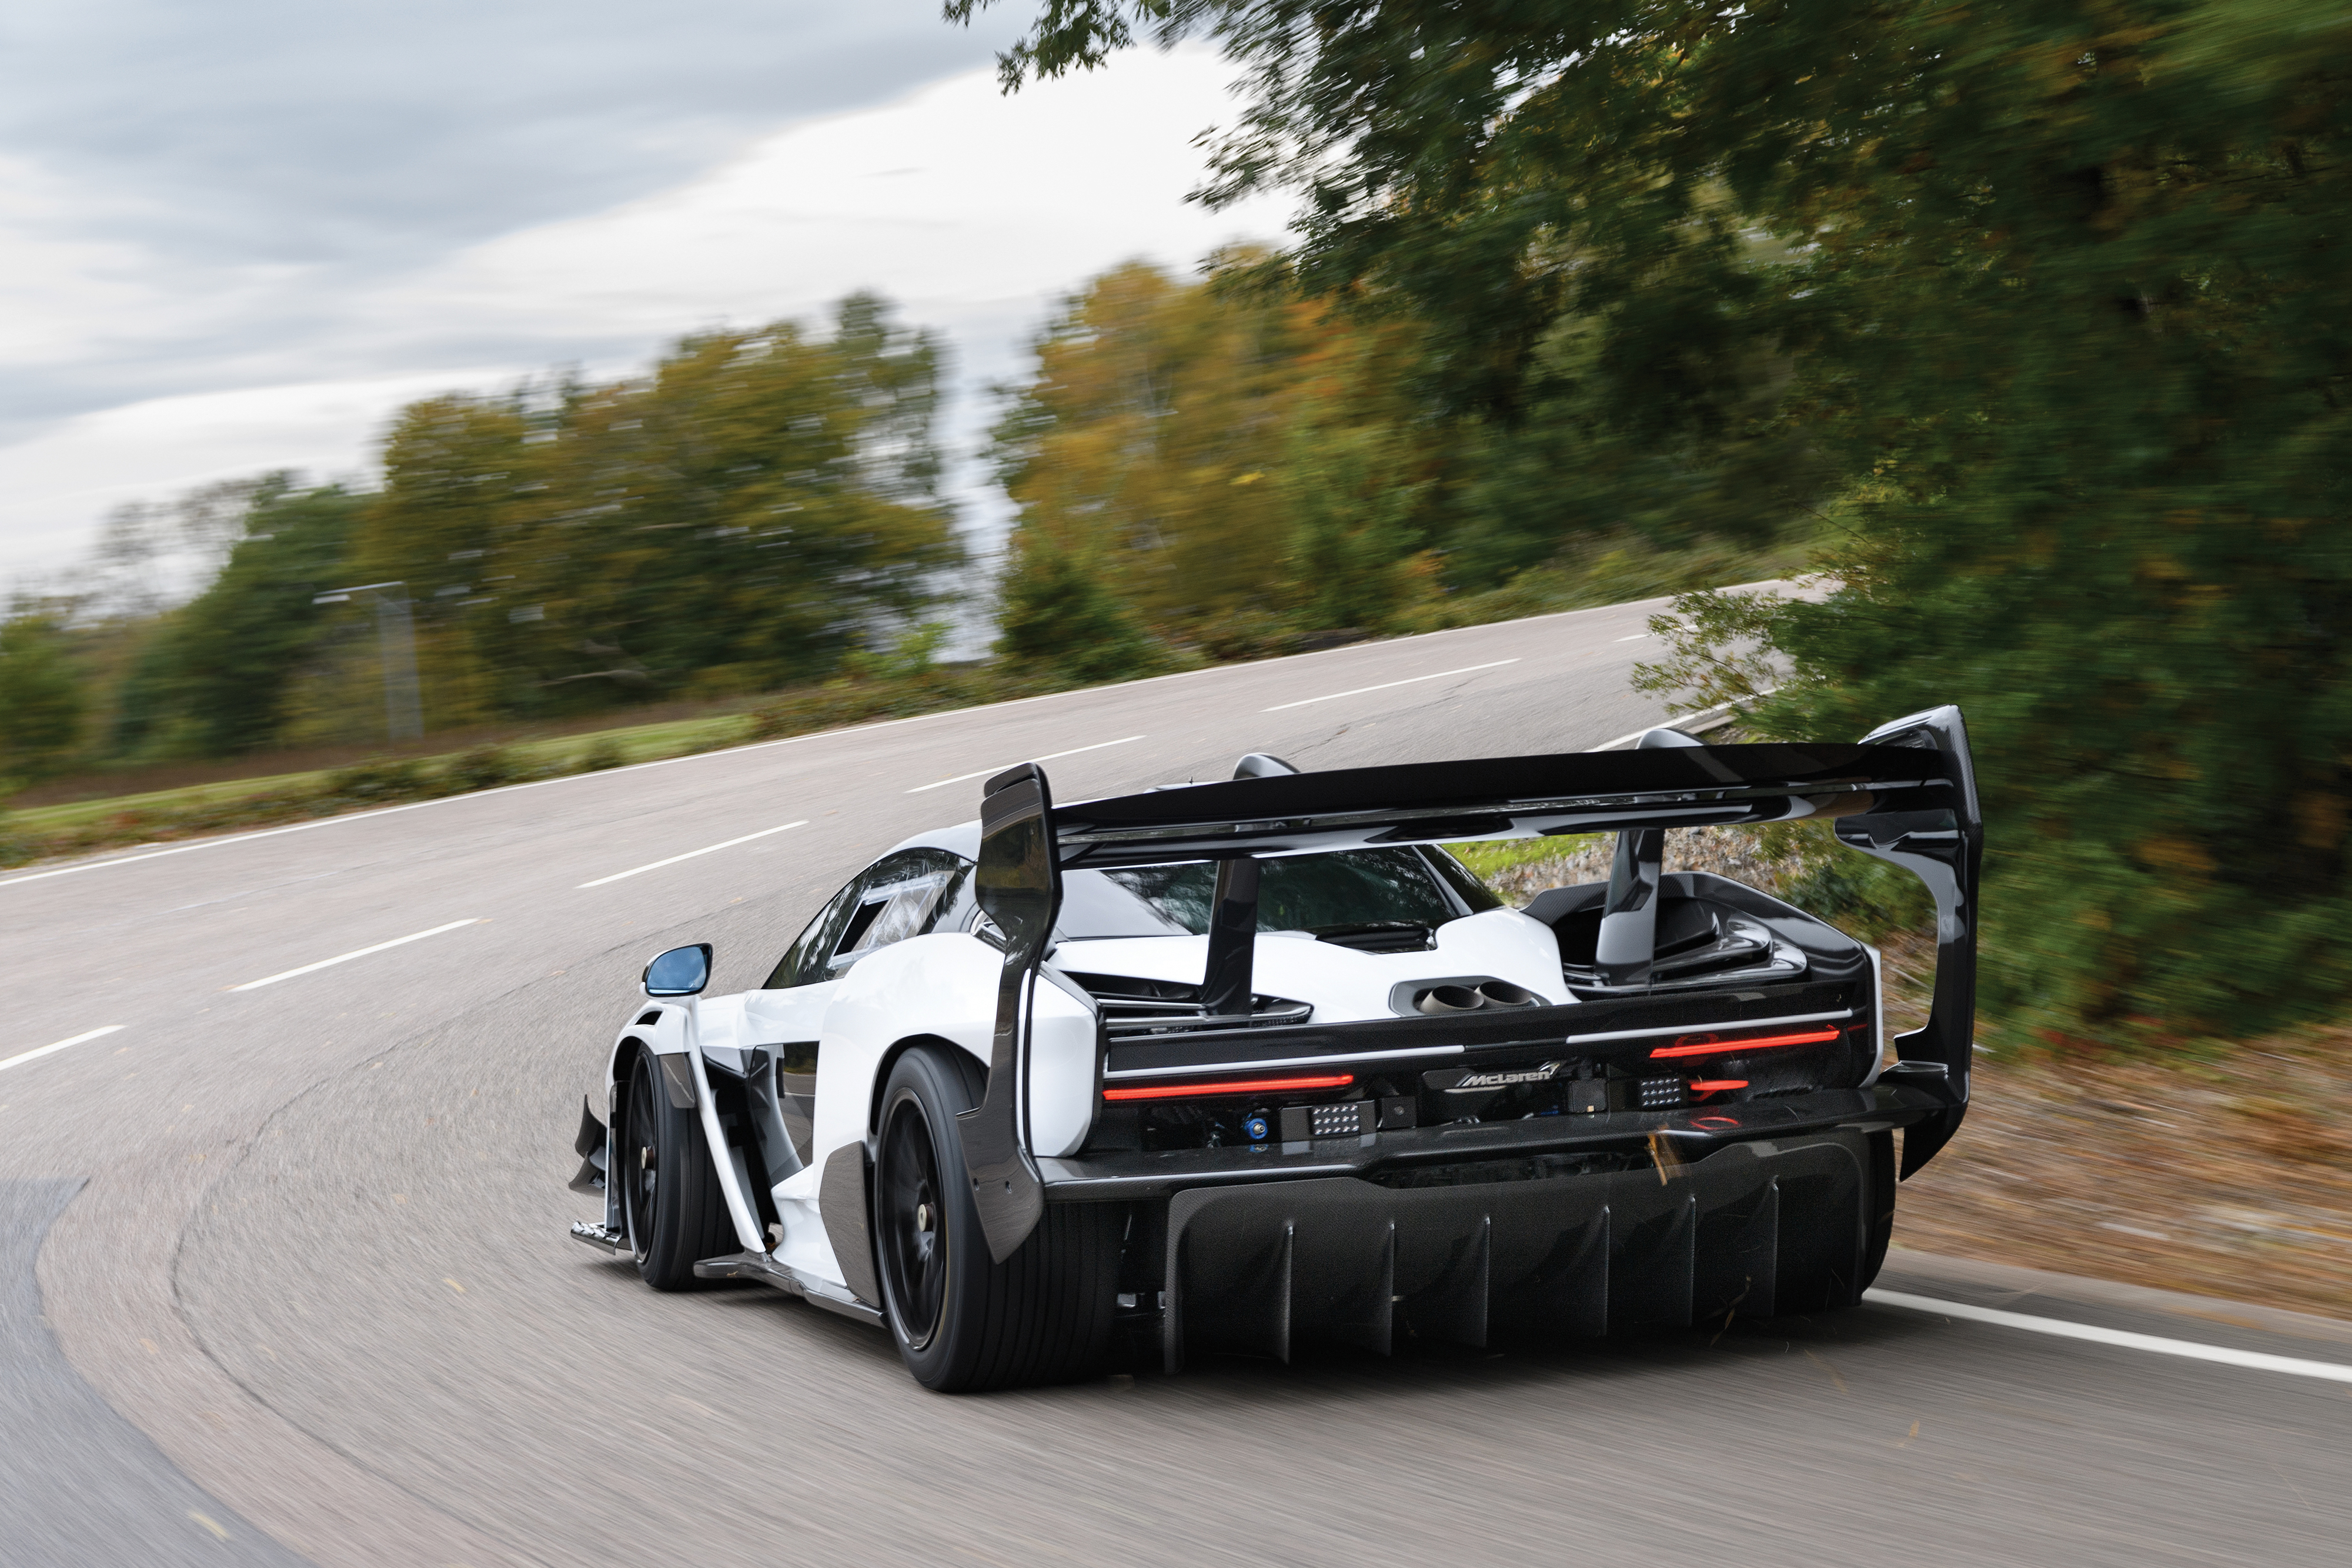 A giant rear wing provides huge downforce